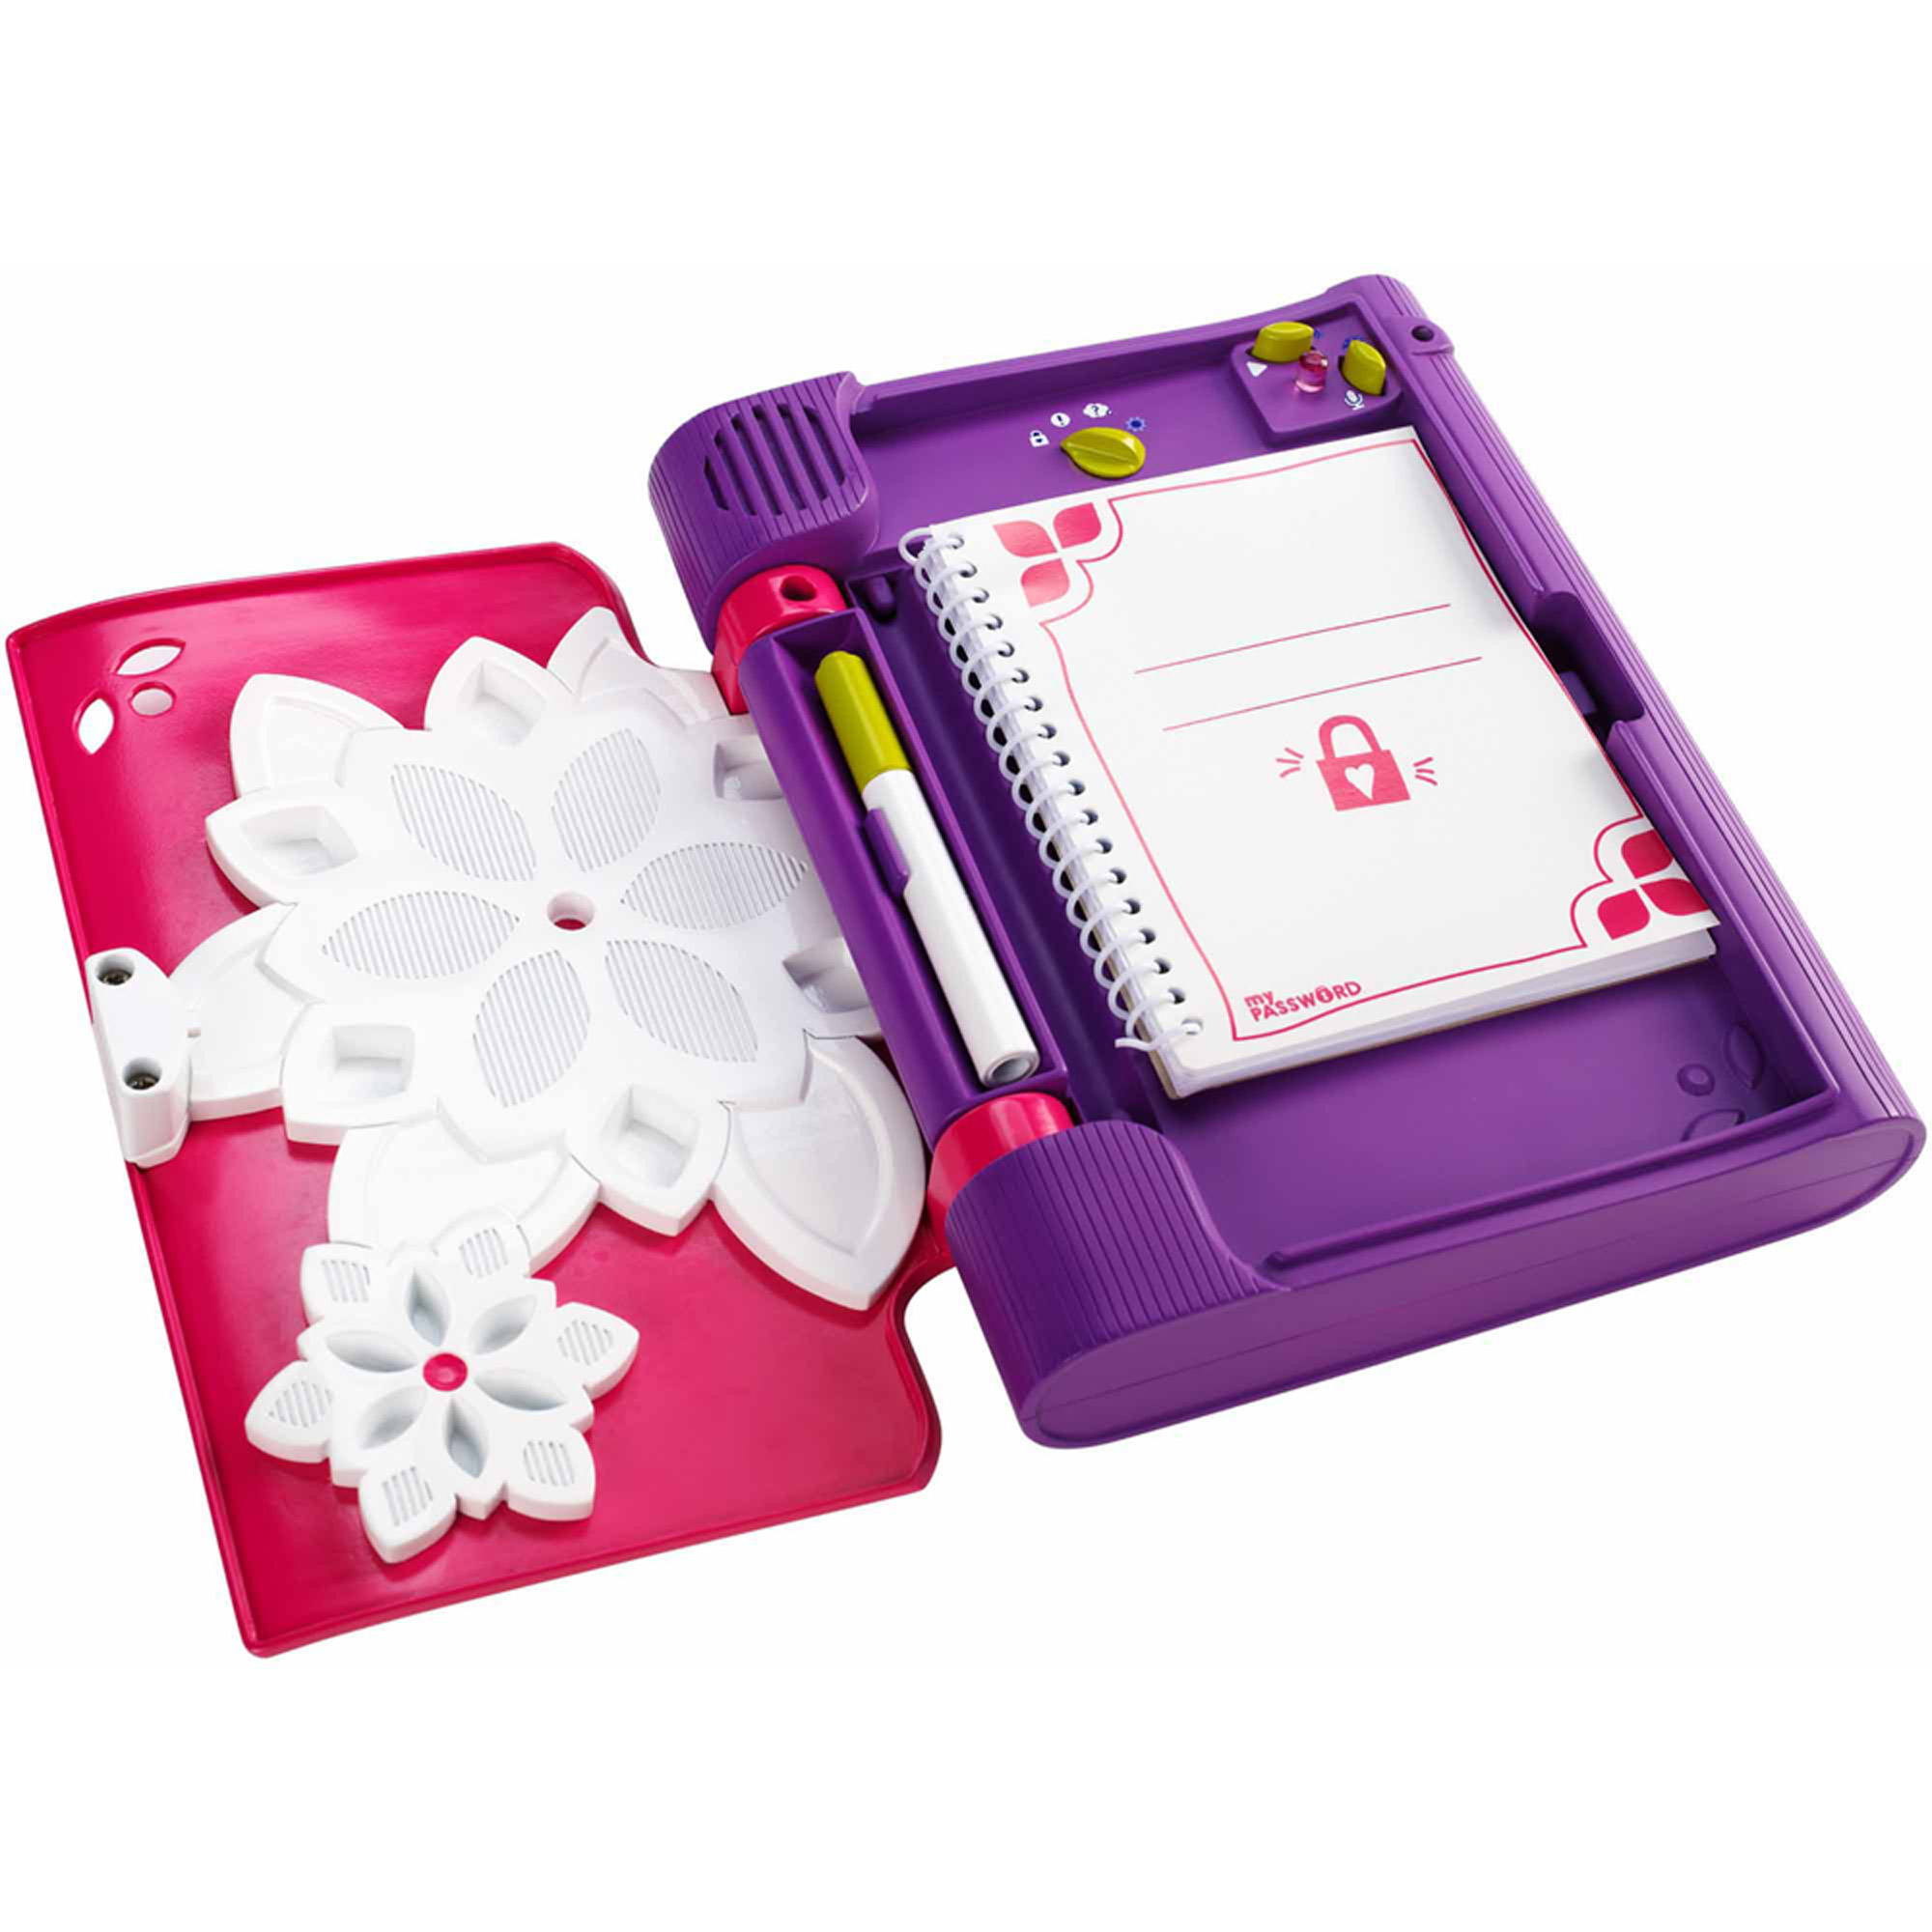 IN-STOCK My Password Journal Voice Activated Mattel Electronic Diary Pink Girl  eBay